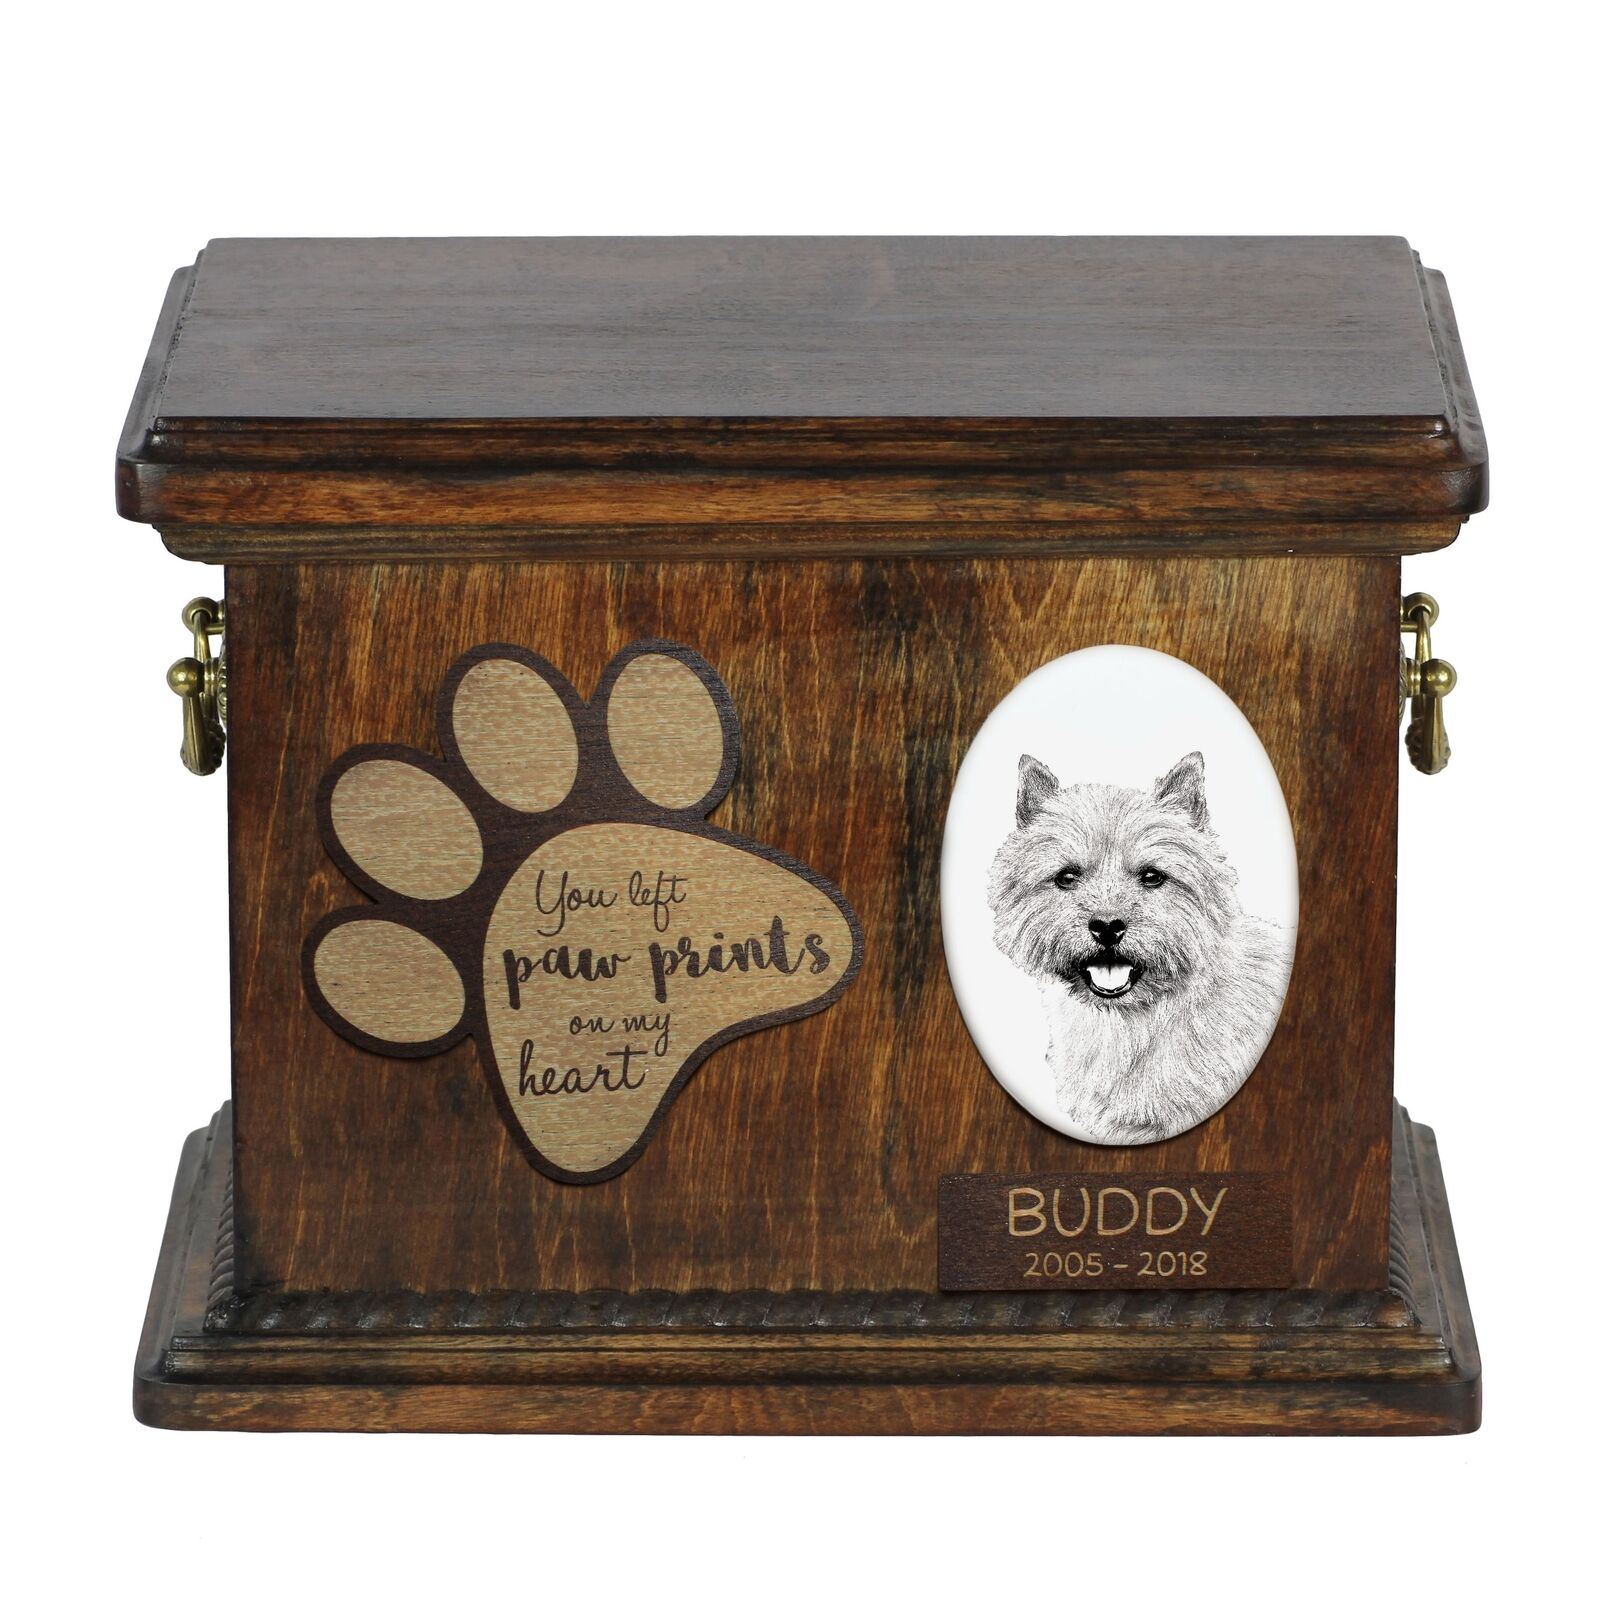 Norwich Terrier - Urn for dog's ashes with ceramic plate and description, ArtDog